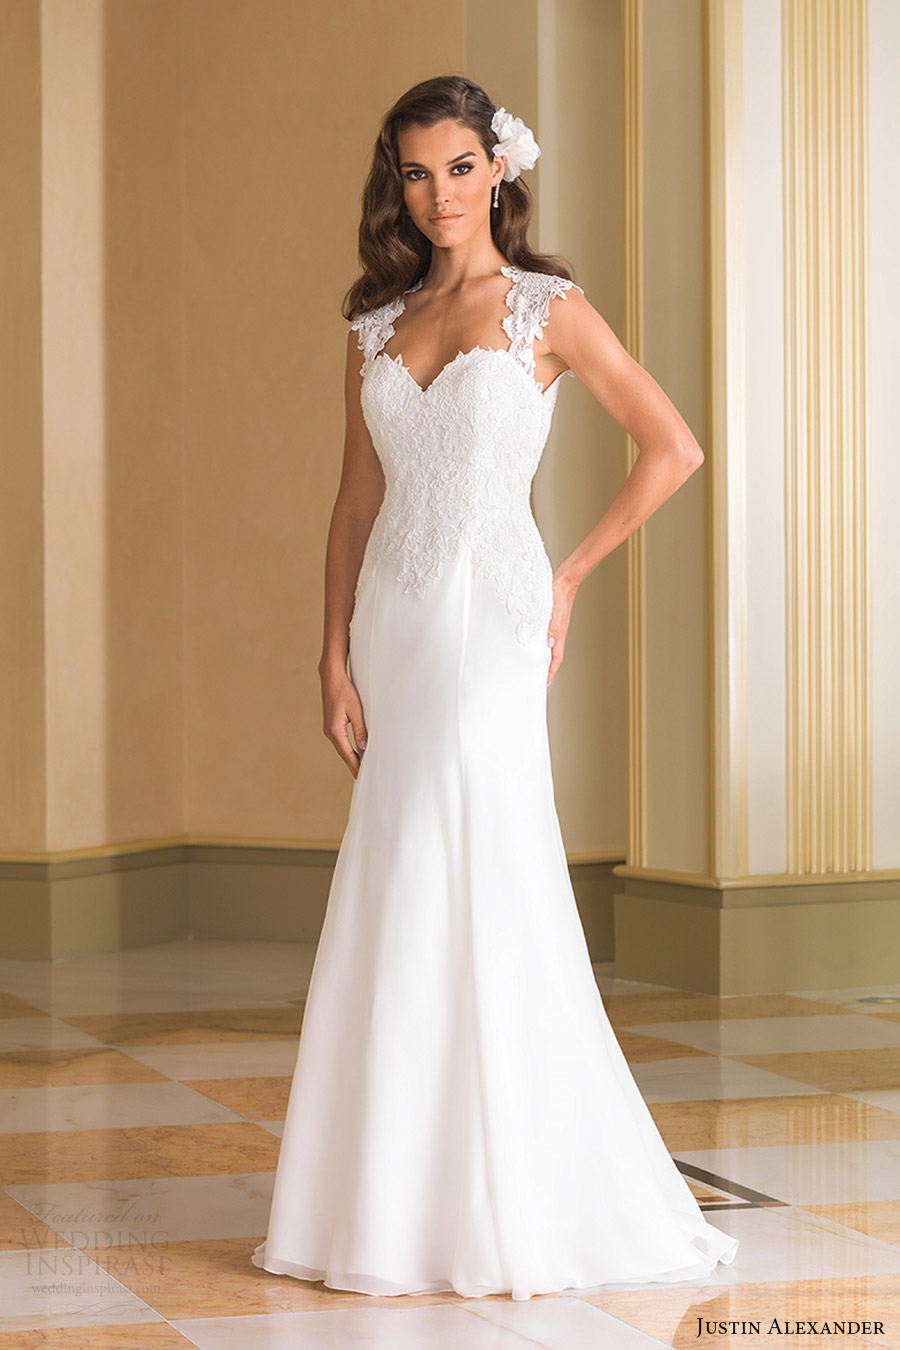 justin alexander bridal fall 2016 cap sleeves cap sleeves queen anne neckline fit flare wedding dress (8867) mv